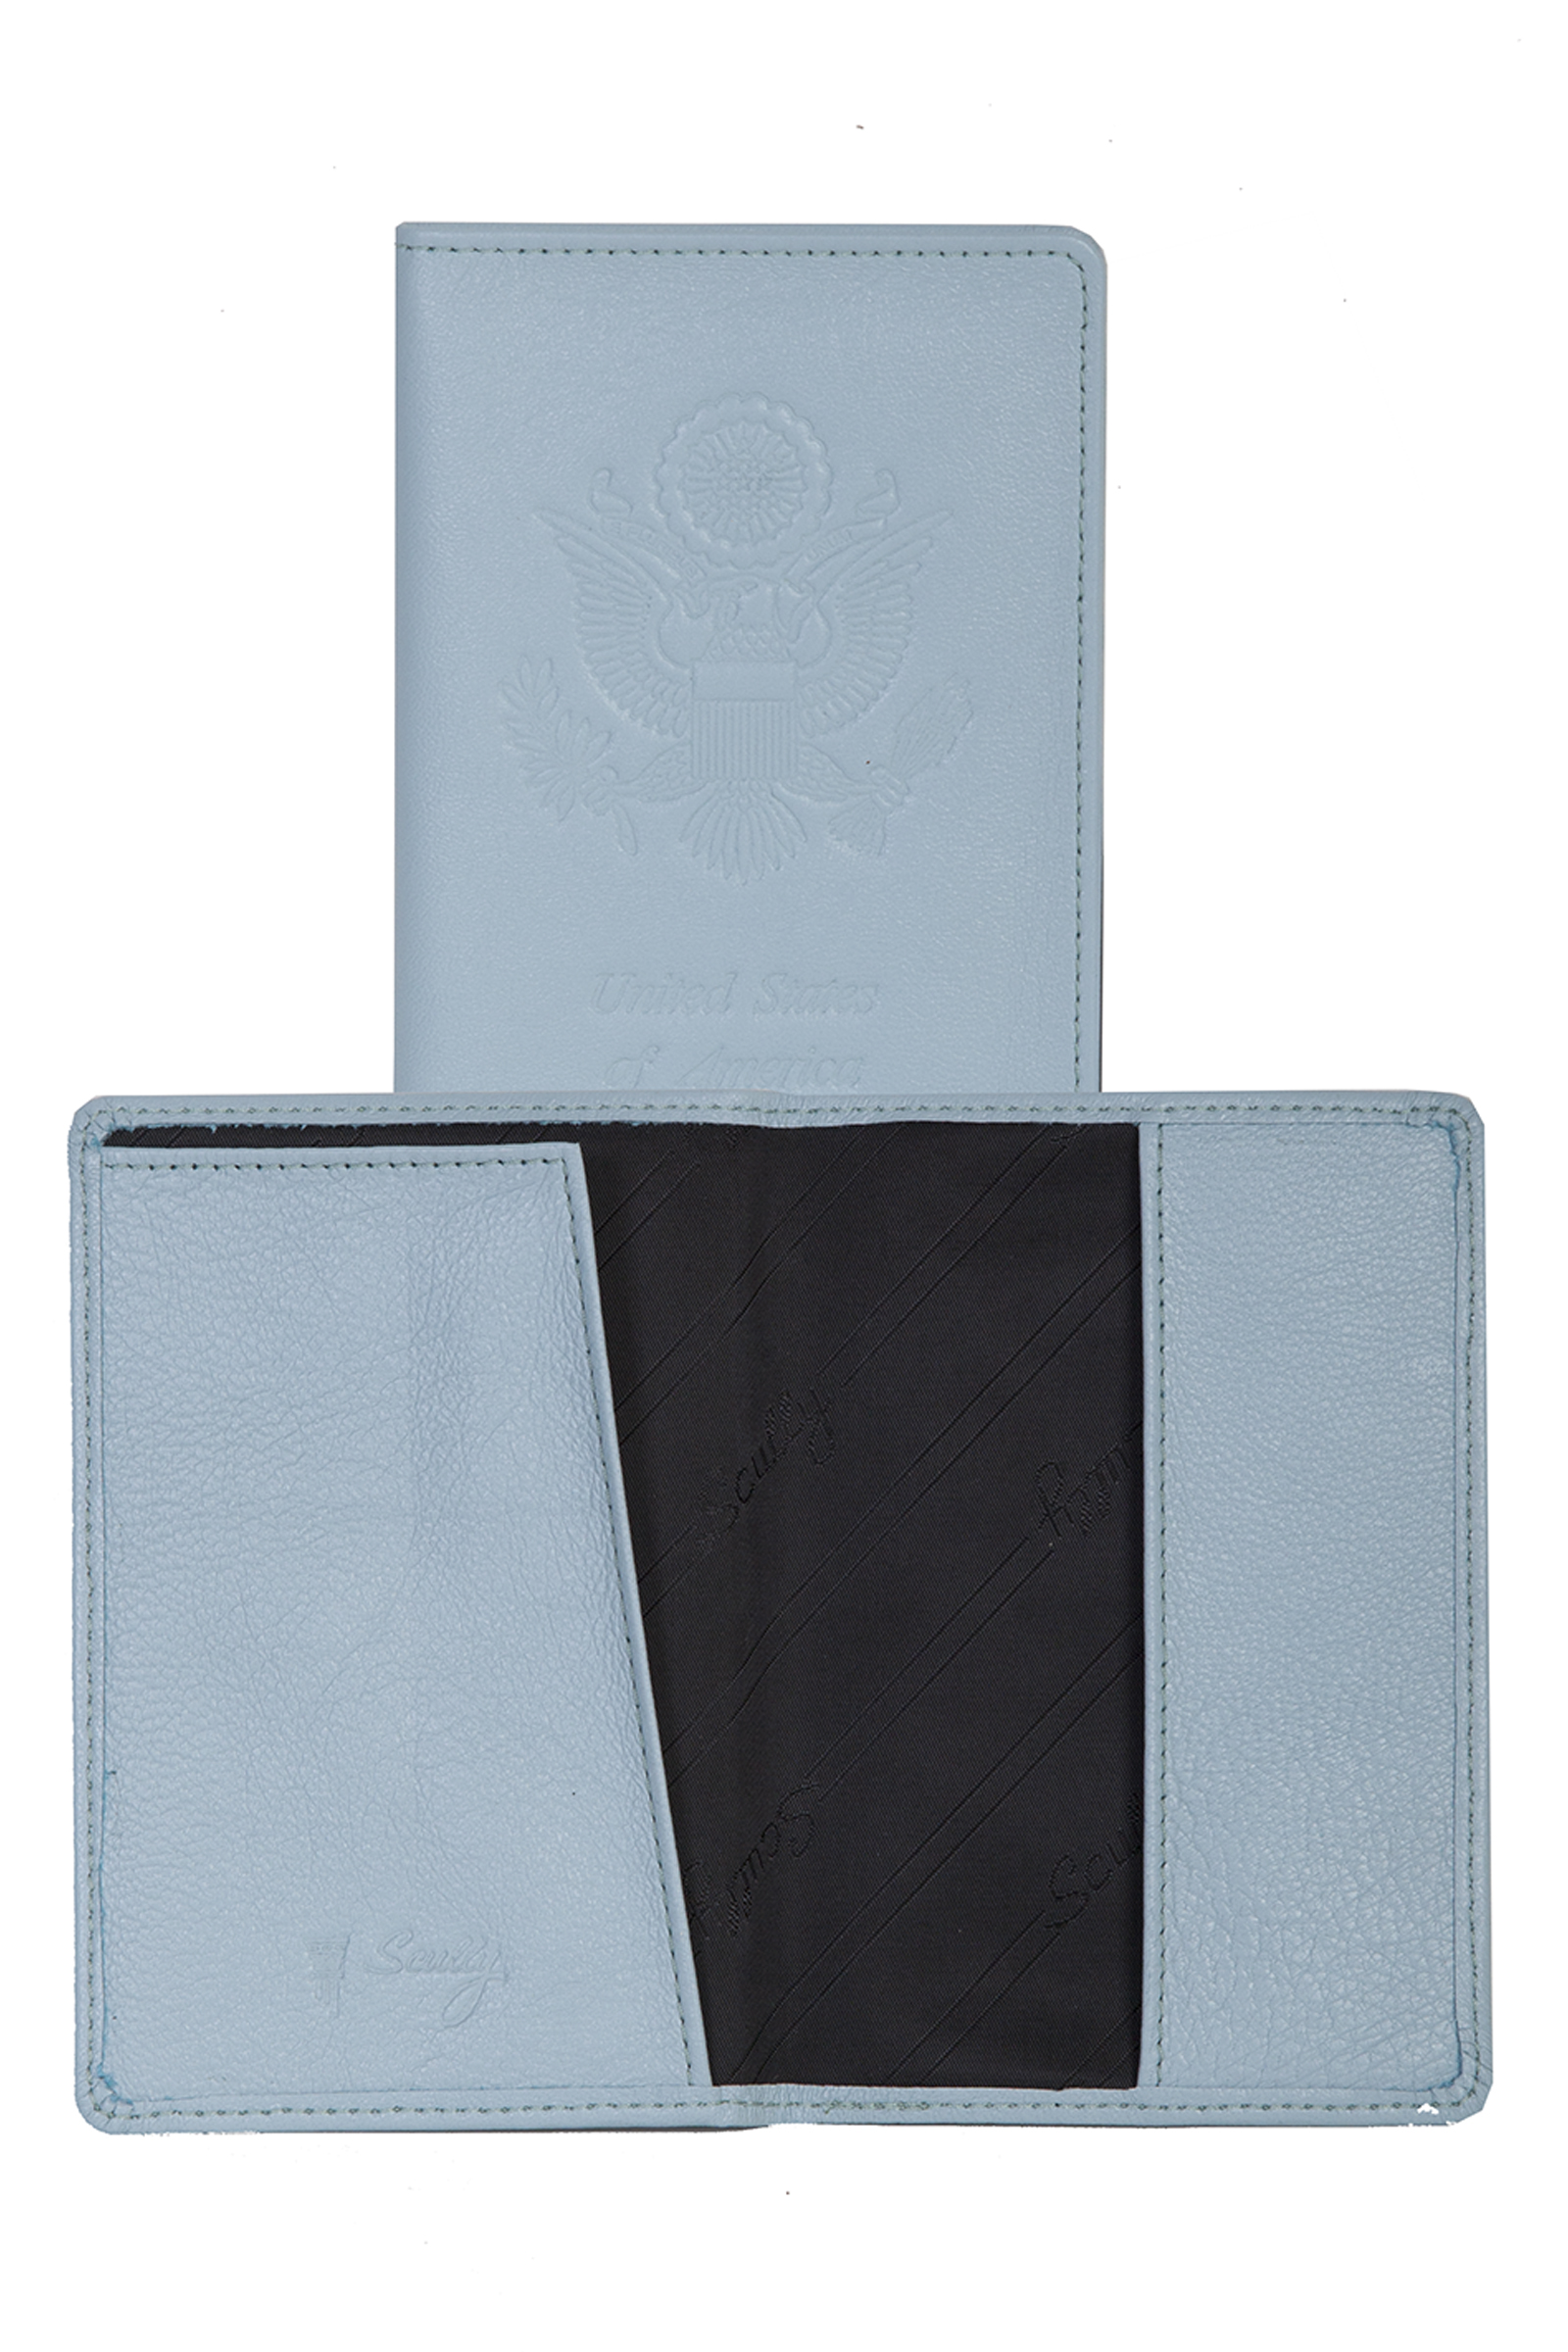 Lambskin passport cover